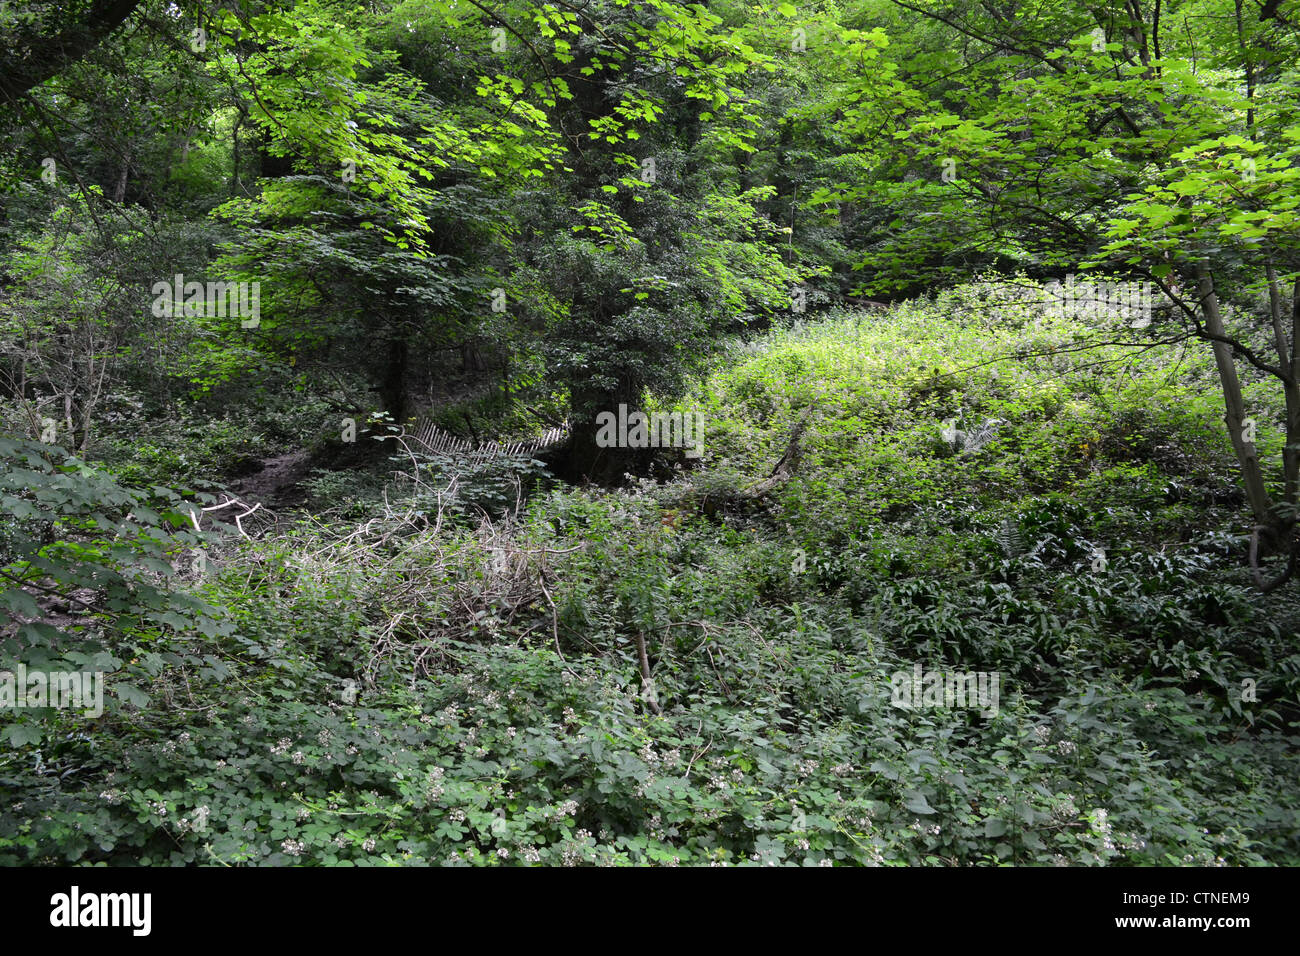 Deep in the Hedges. - Stock Image